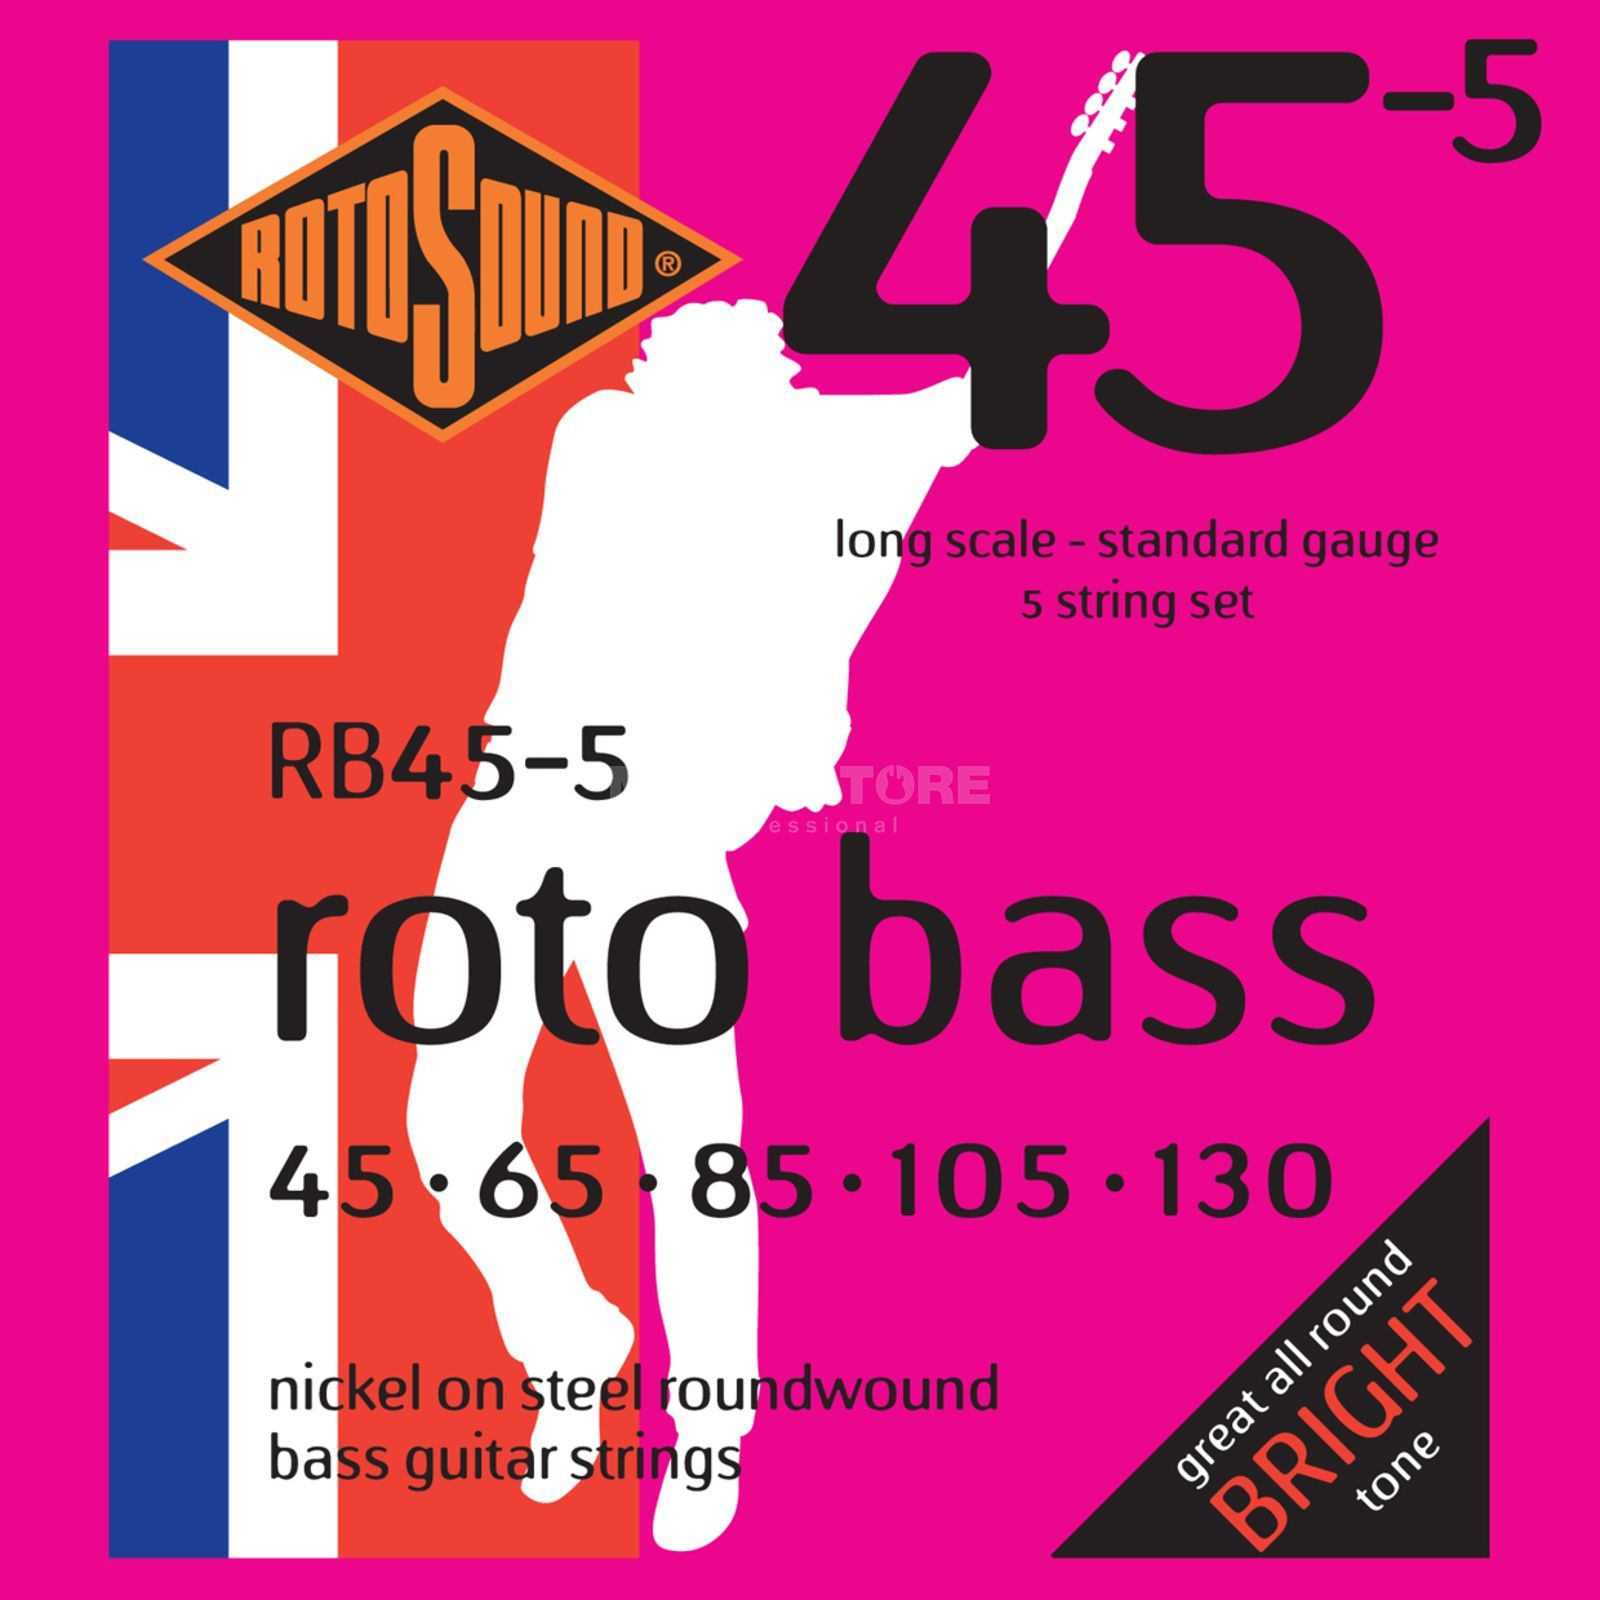 Rotosound Bass Strings RB455 5er 45-130 Nickel Wound Zdjęcie produktu